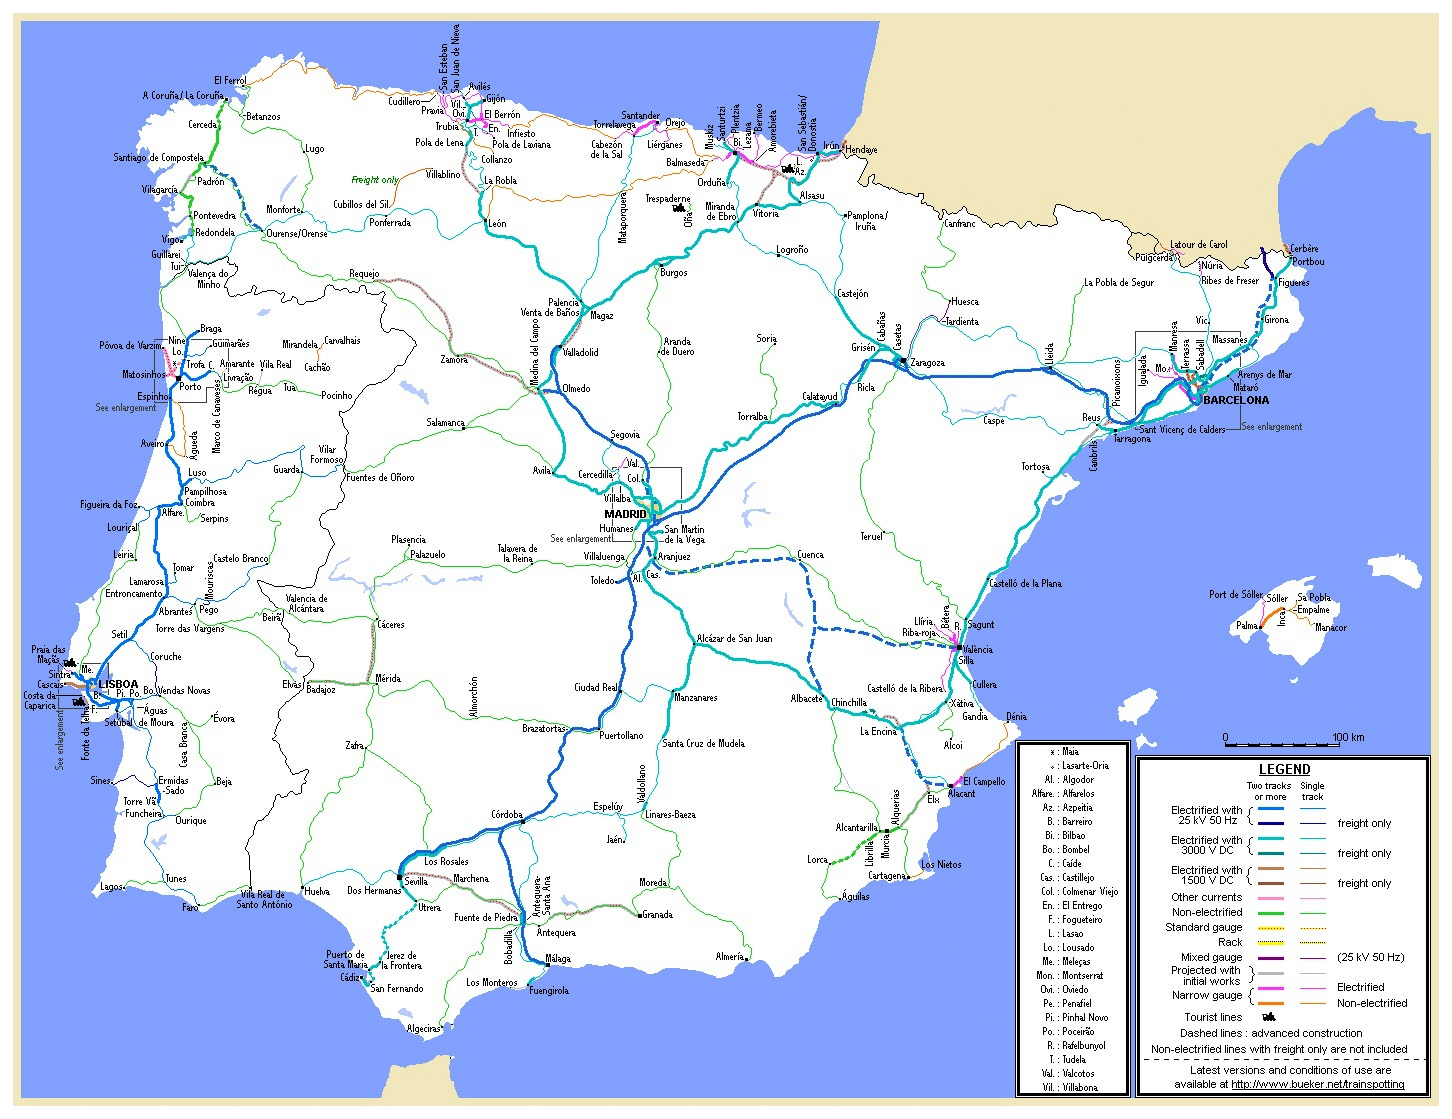 Map Of Portugal And Spain.Large Detailed Railroads Map Of Spain And Portugal Spain And